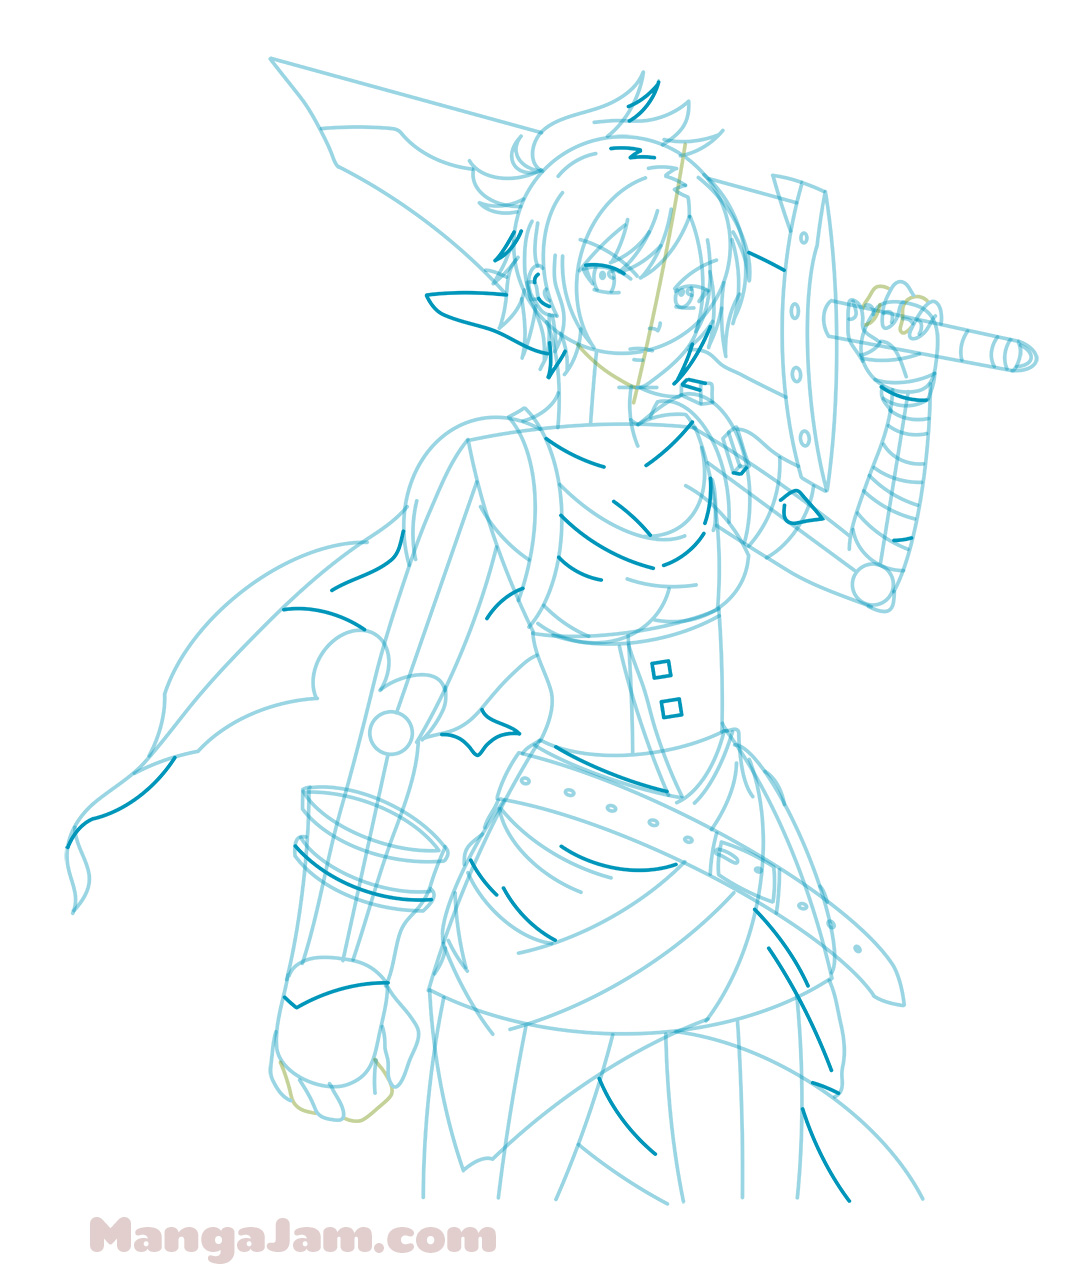 How To Draw Riven From League Of Legends Mangajam Com The whole site has been created with league of legends players in mind. to draw riven from league of legends